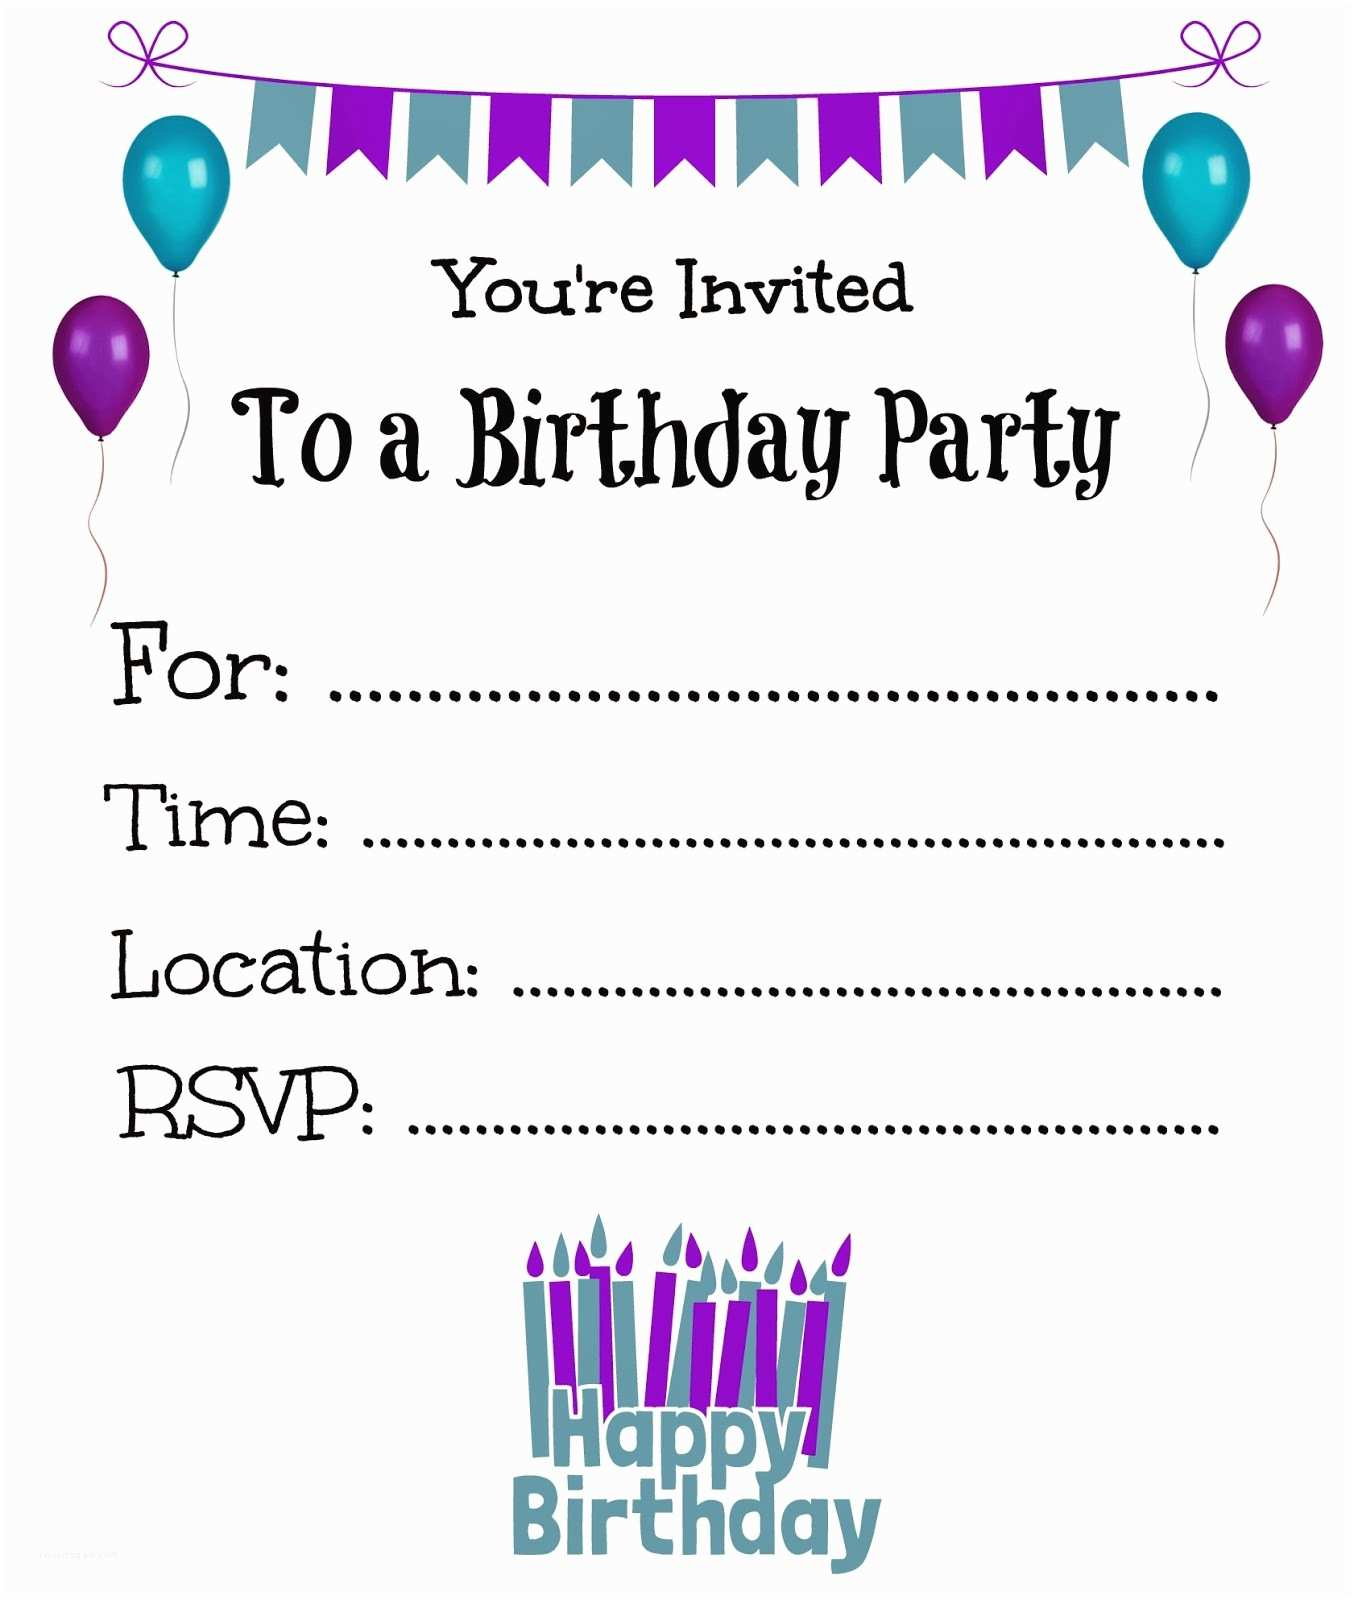 Printable Birthday Party Invitations It S A Princess Thing Free Printable Birthday Invitations